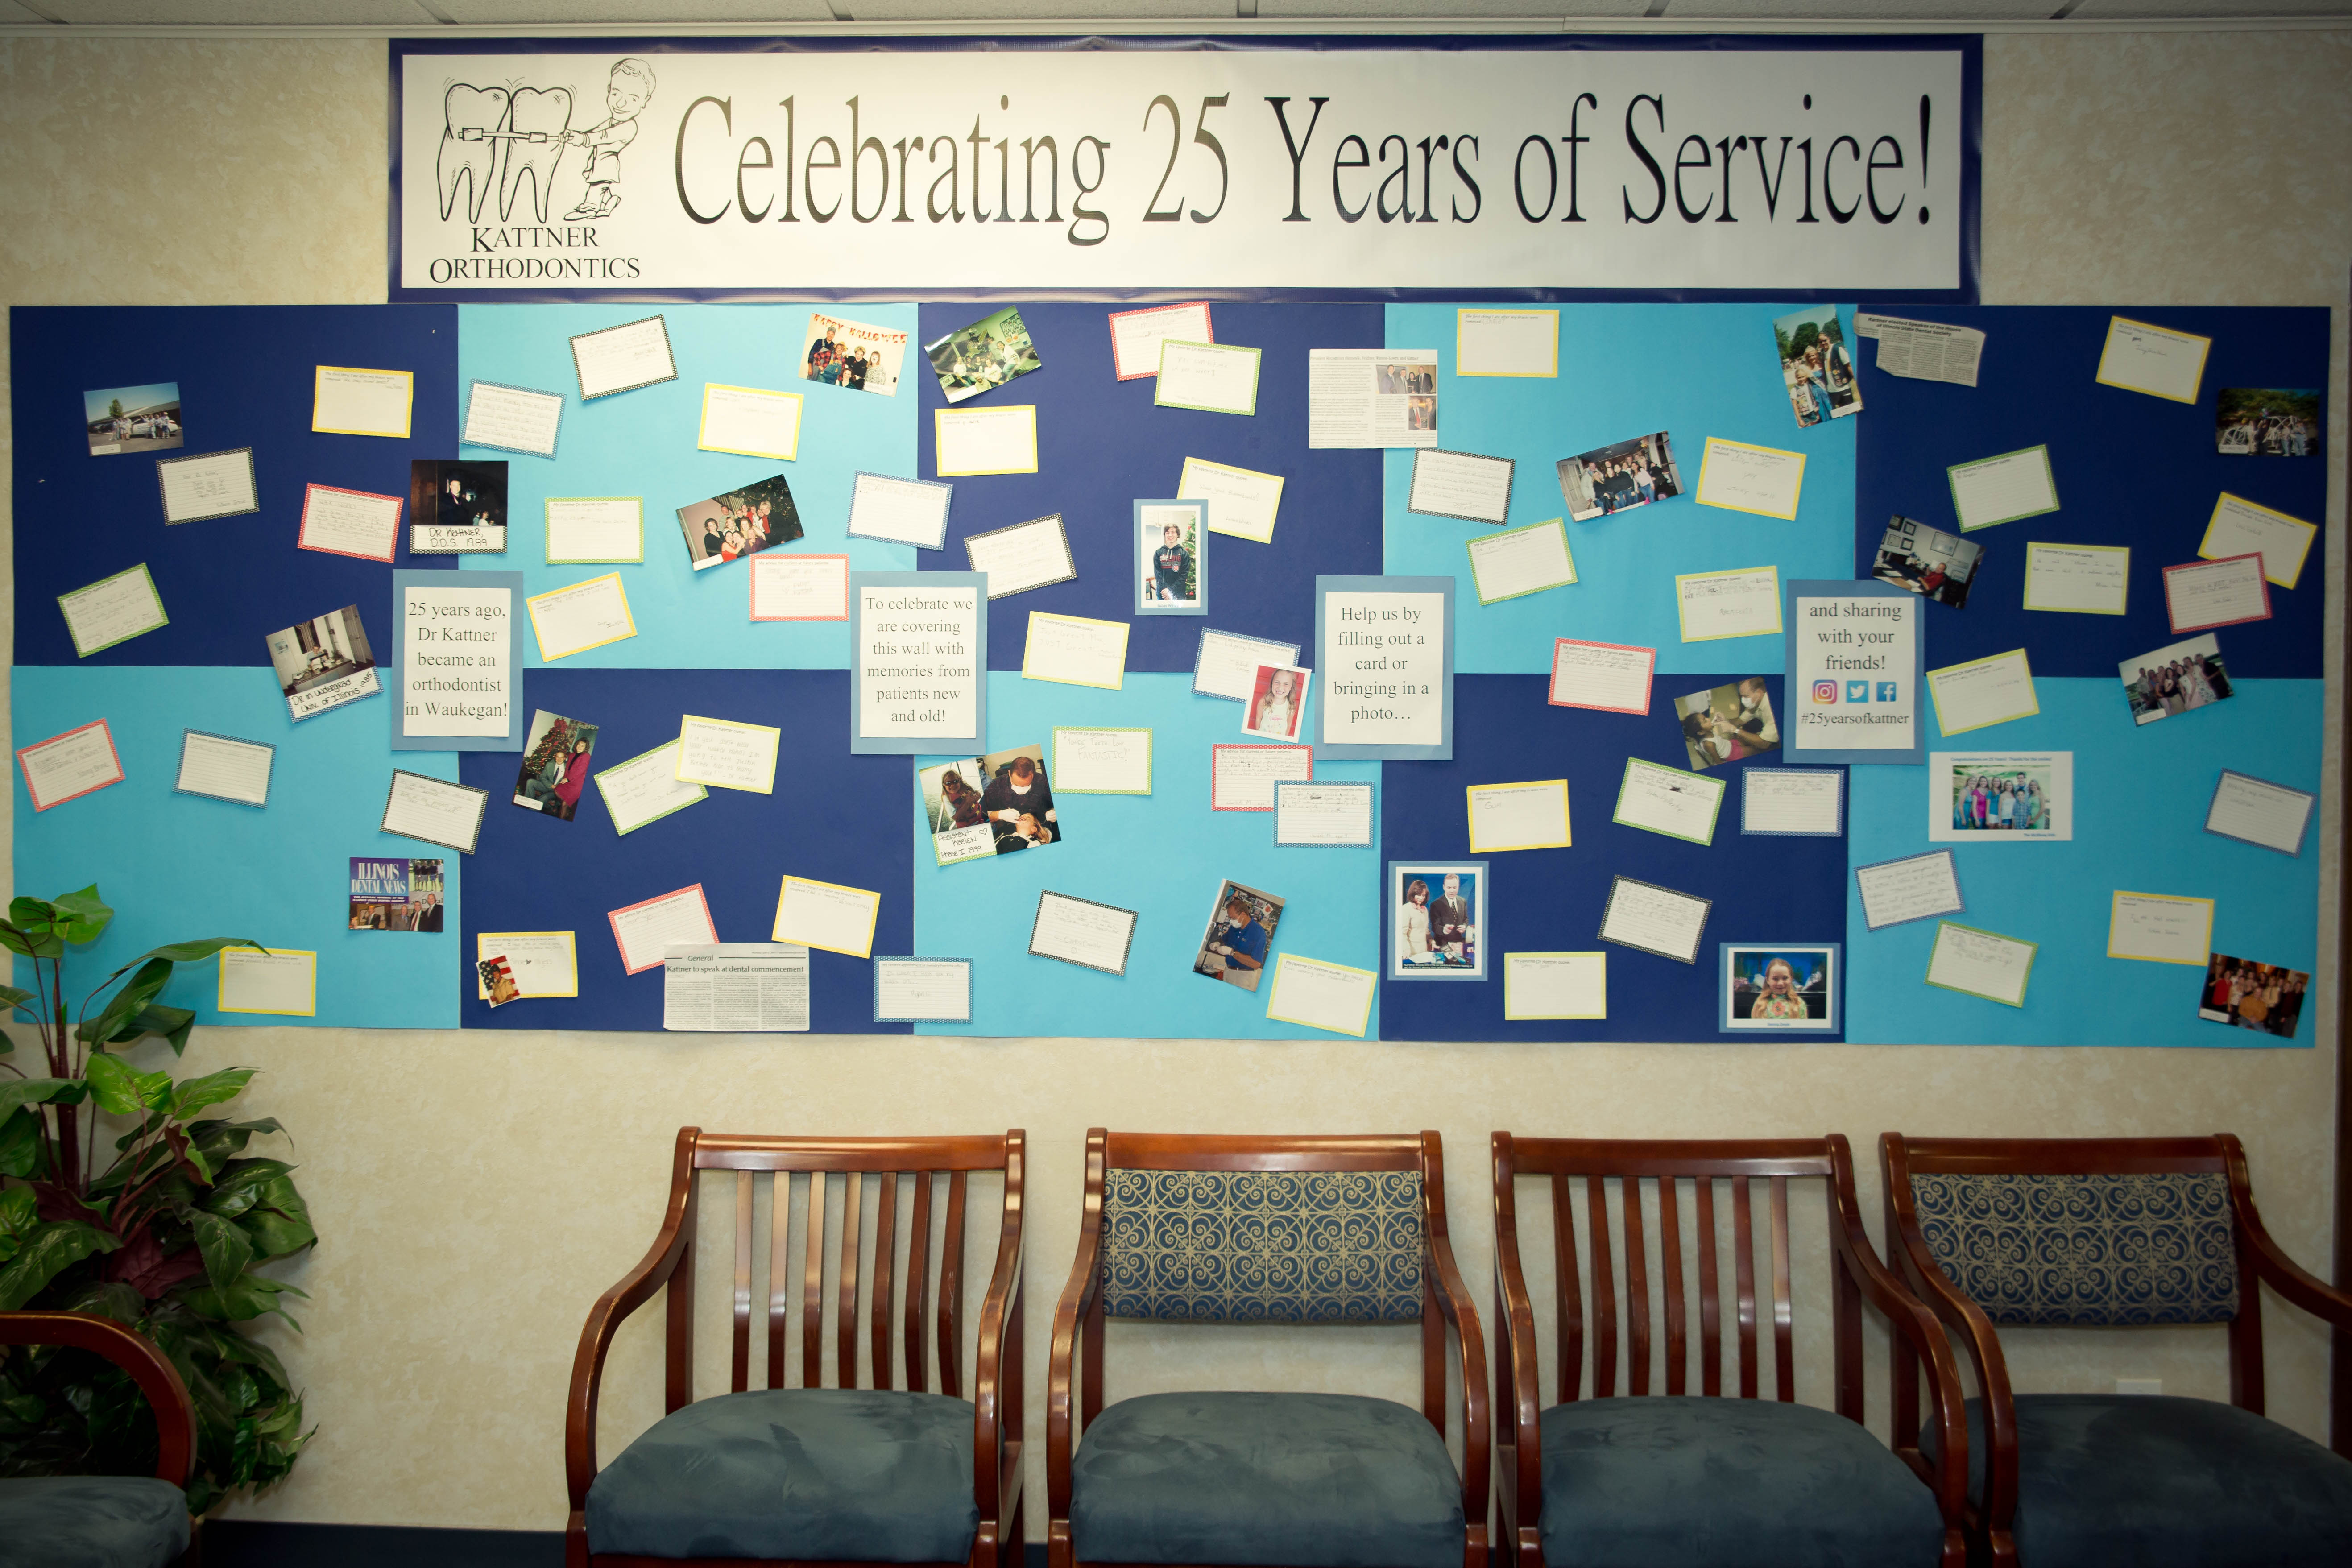 This is the image for the news article titled Kattner Orthodontics Celebrates 25 Years As Waukegan's Top Orthodontist